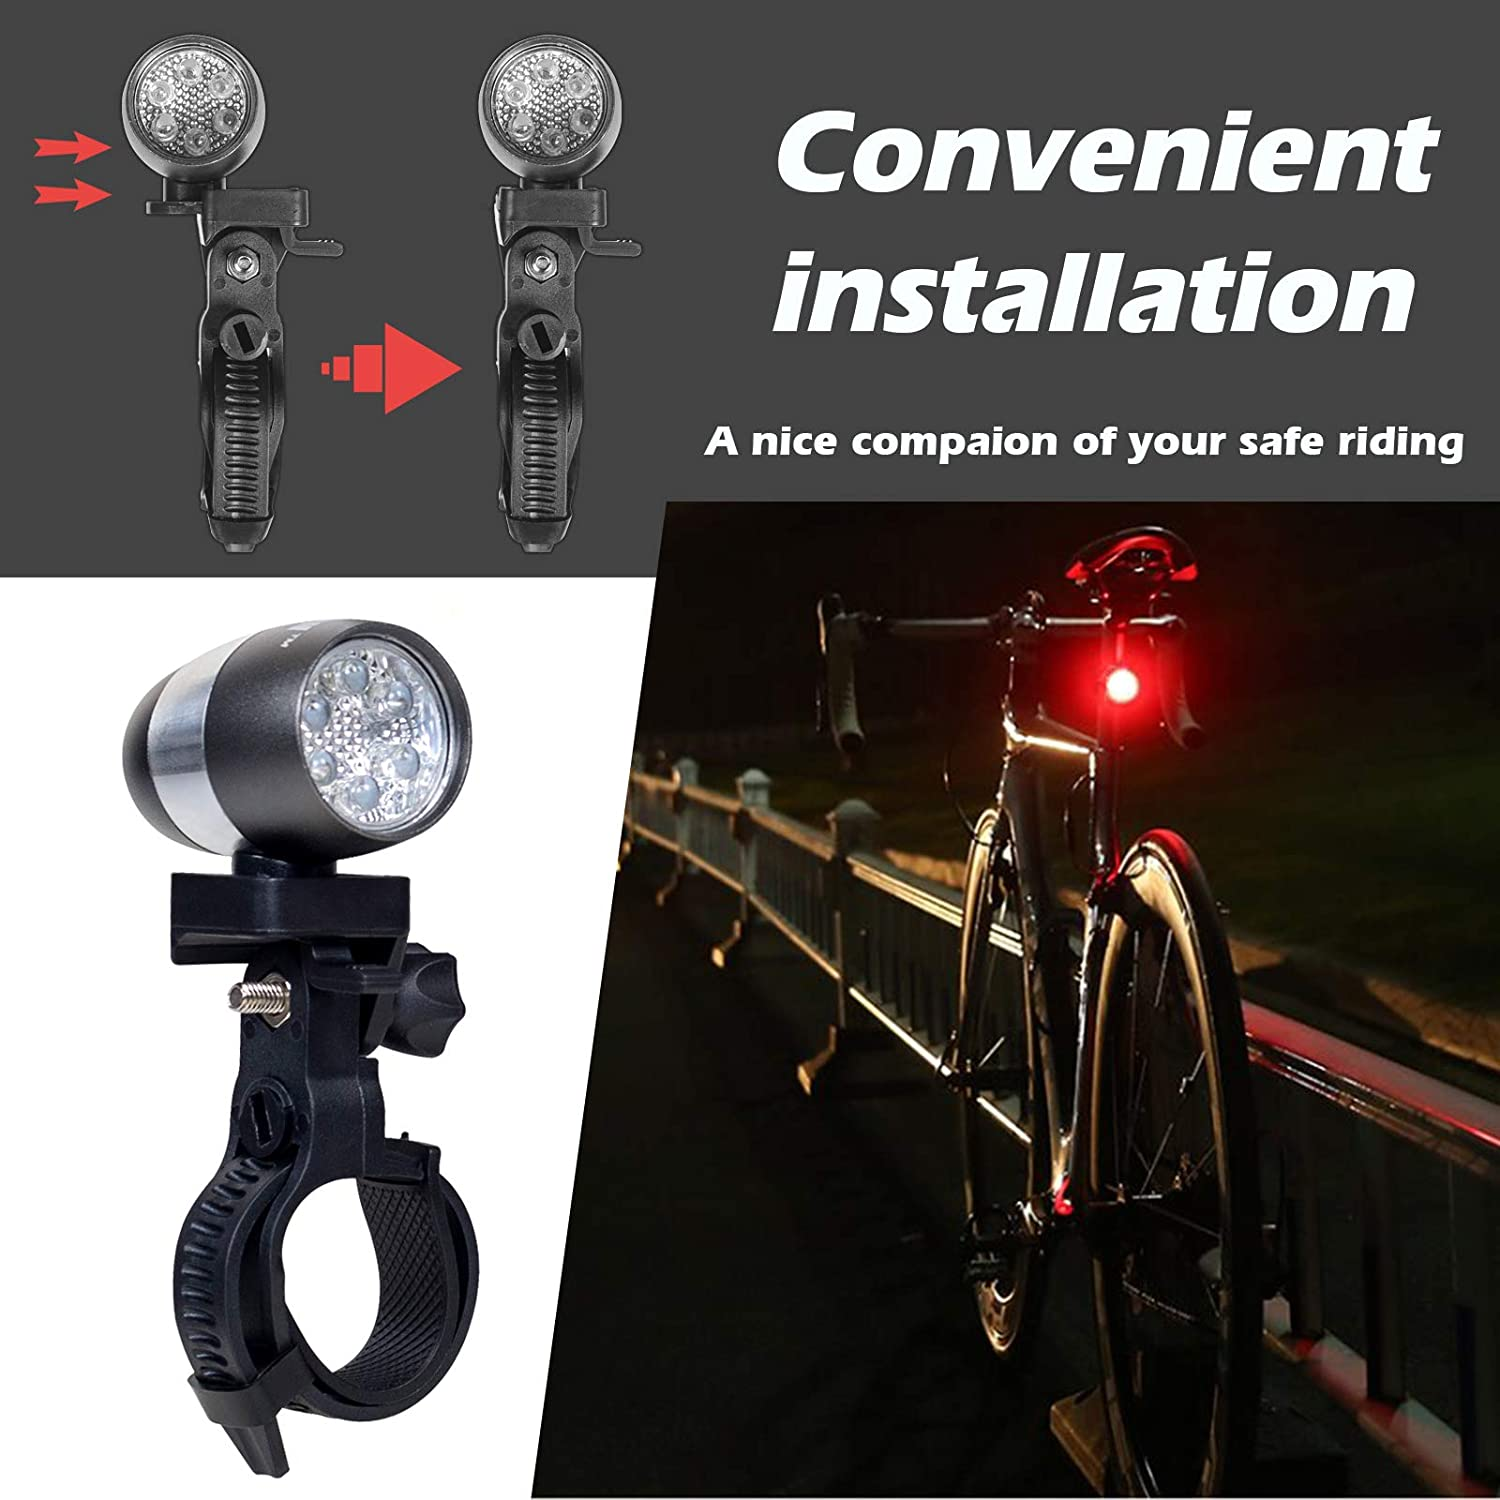 Easy to Mount Headlight and Taillight with Quick Release System KSWIN Aluminum Bicycle Light Set LED Front and Rear Cycle Lighting AAA Battery Powered Fits All Bikes for City Riding Safety